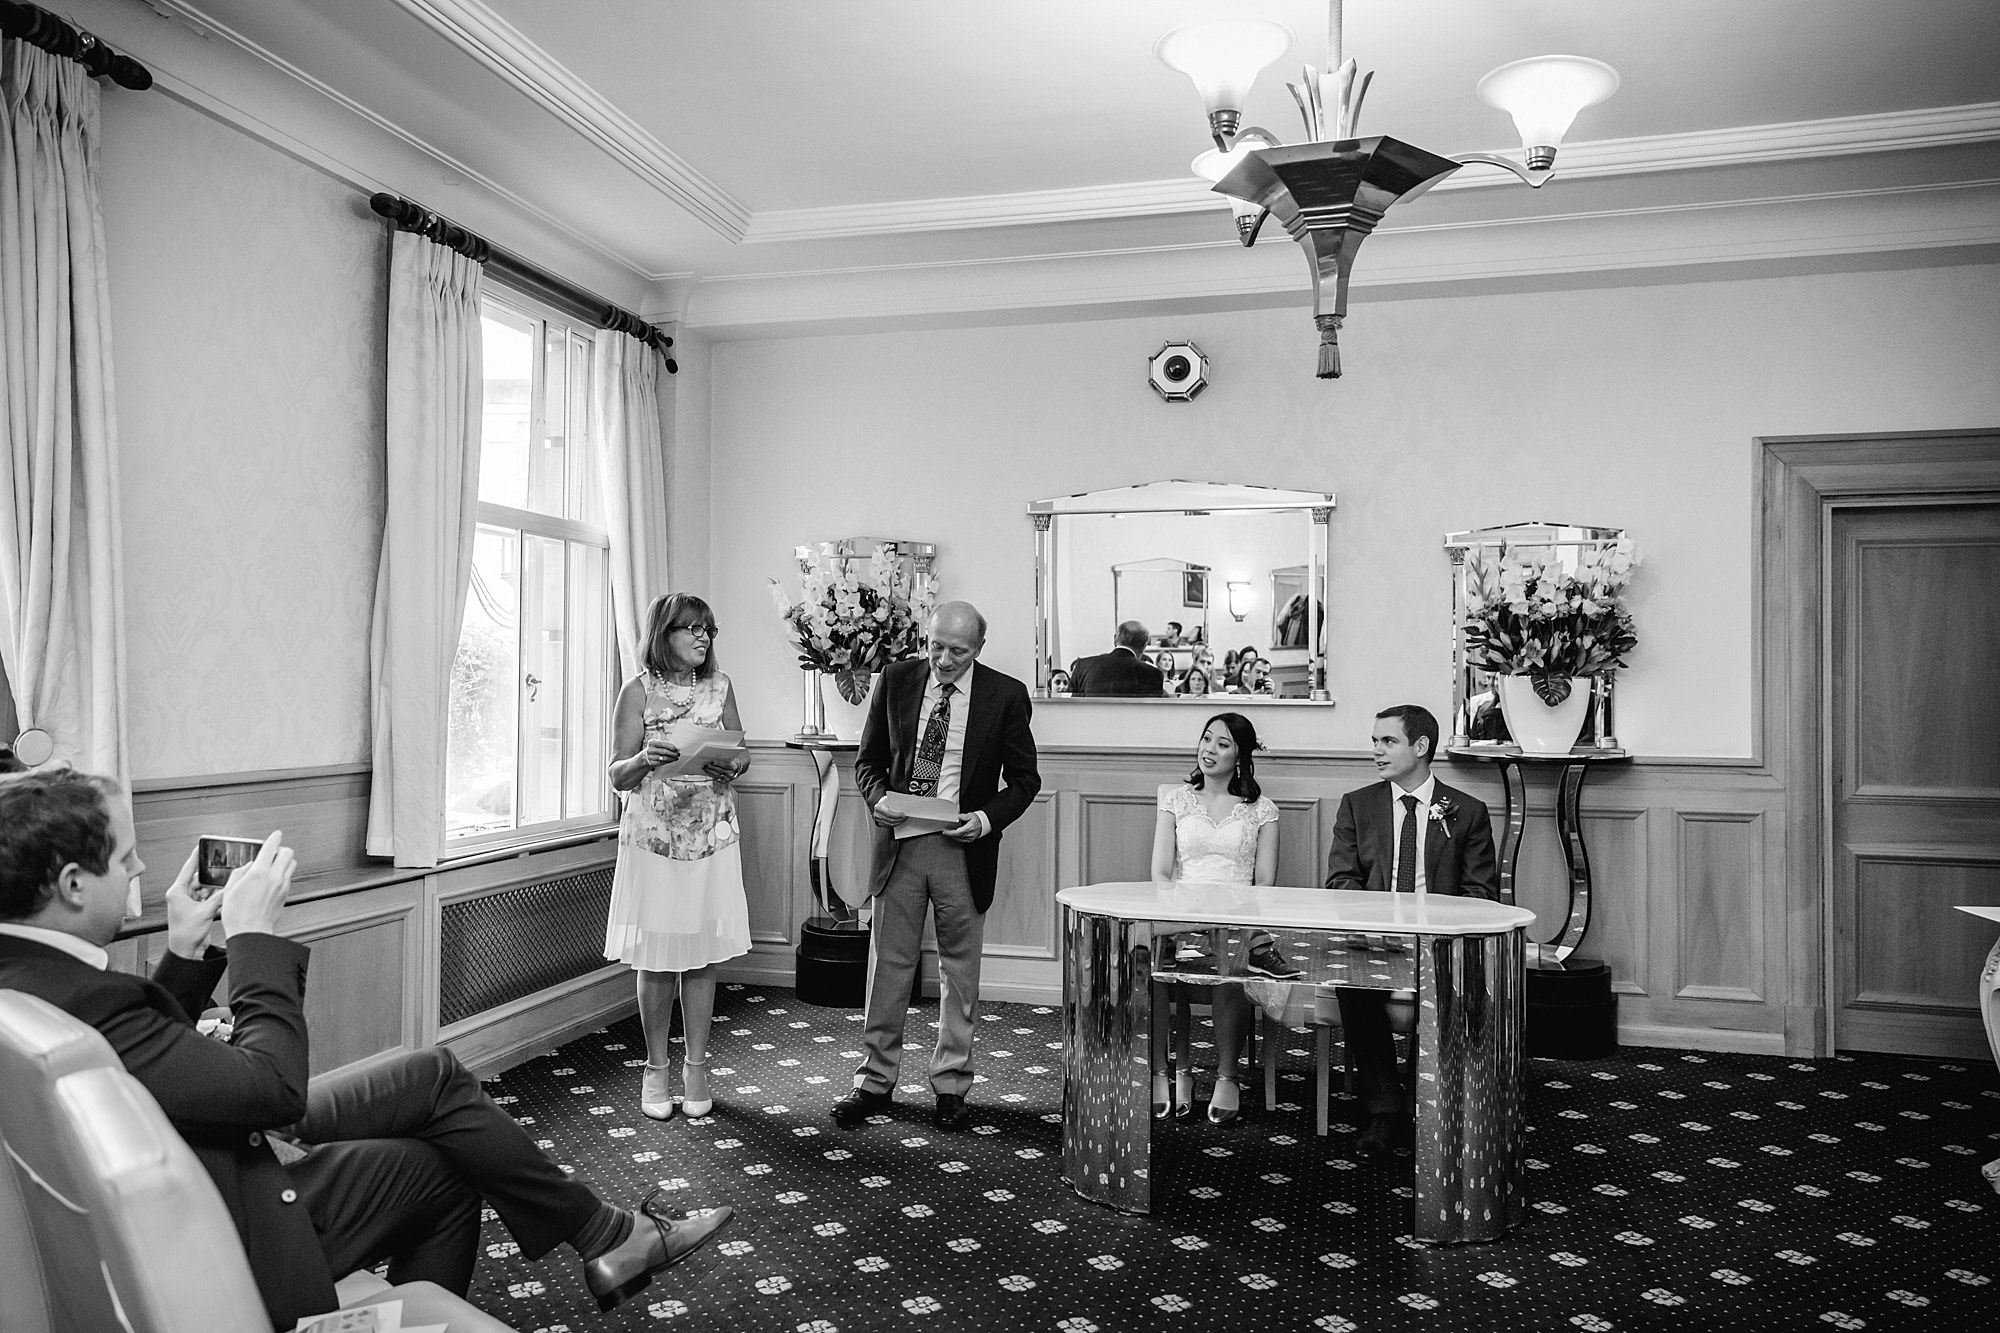 Wandsworth pub wedding reading during wedding ceremony